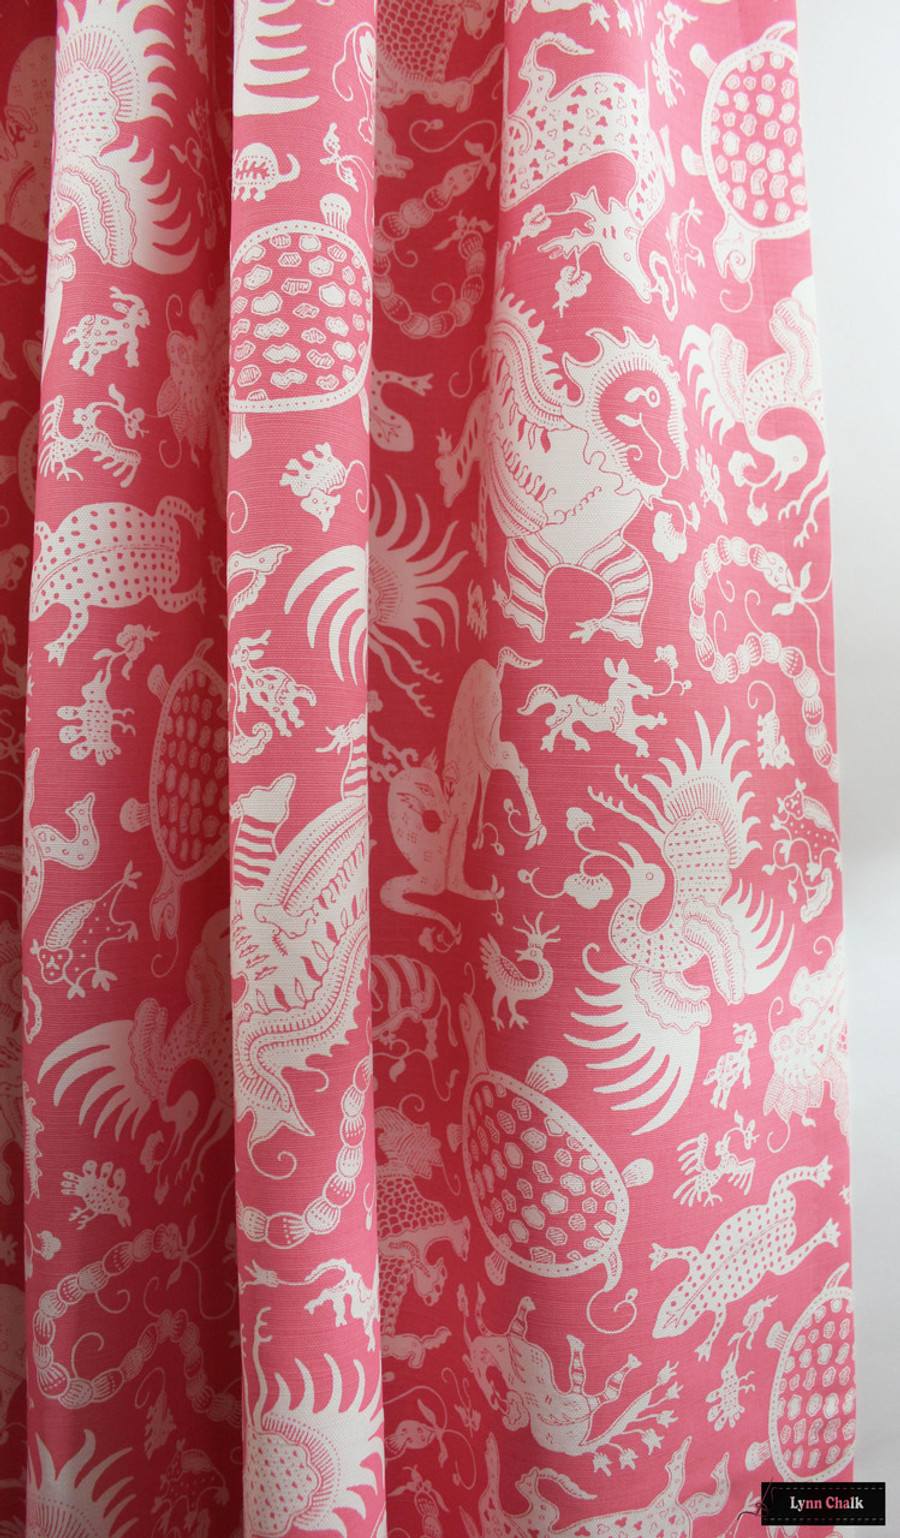 Drapes in Indramayu Reverse Dark Pink on White